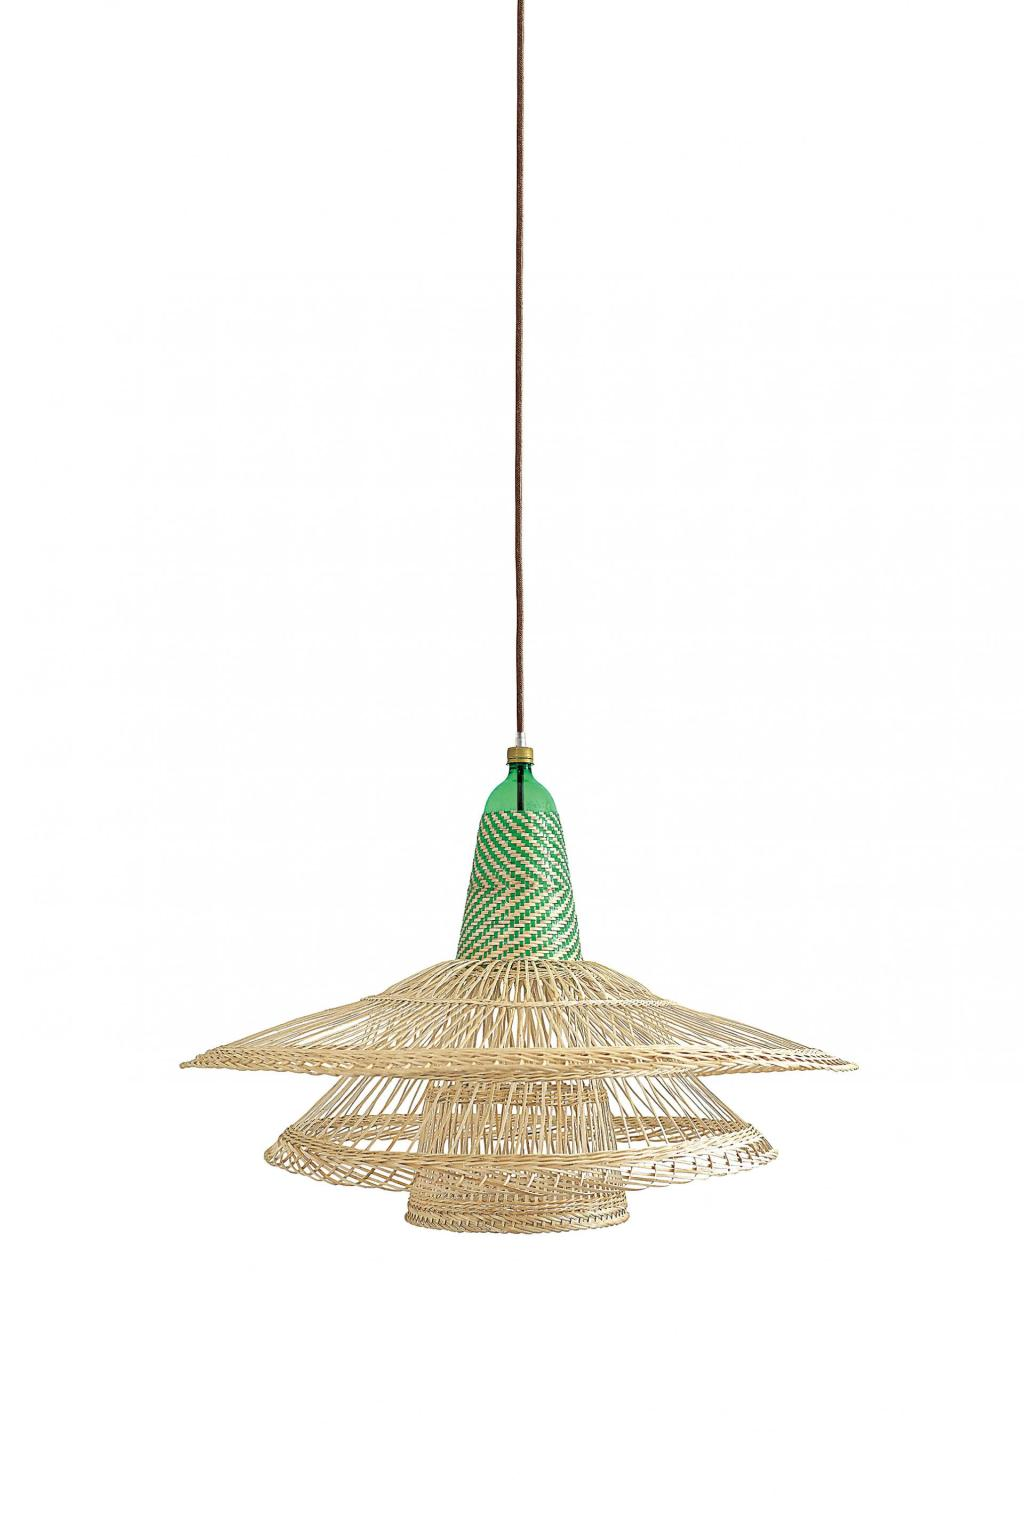 jan15-new-folk-product-rattan-pendant-light-20150113140956-q75,dx1920y-u1r1g0,c--